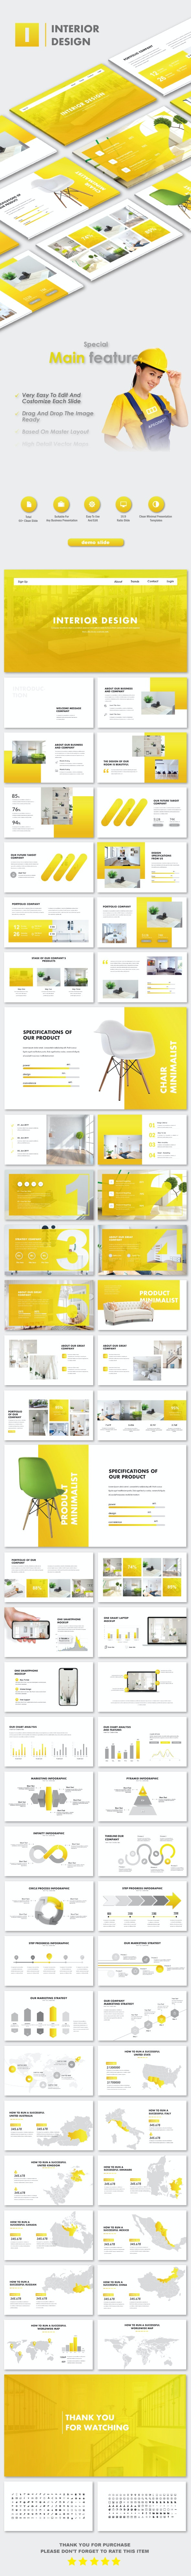 Interior Design Keynote Templates - Business Keynote Templates